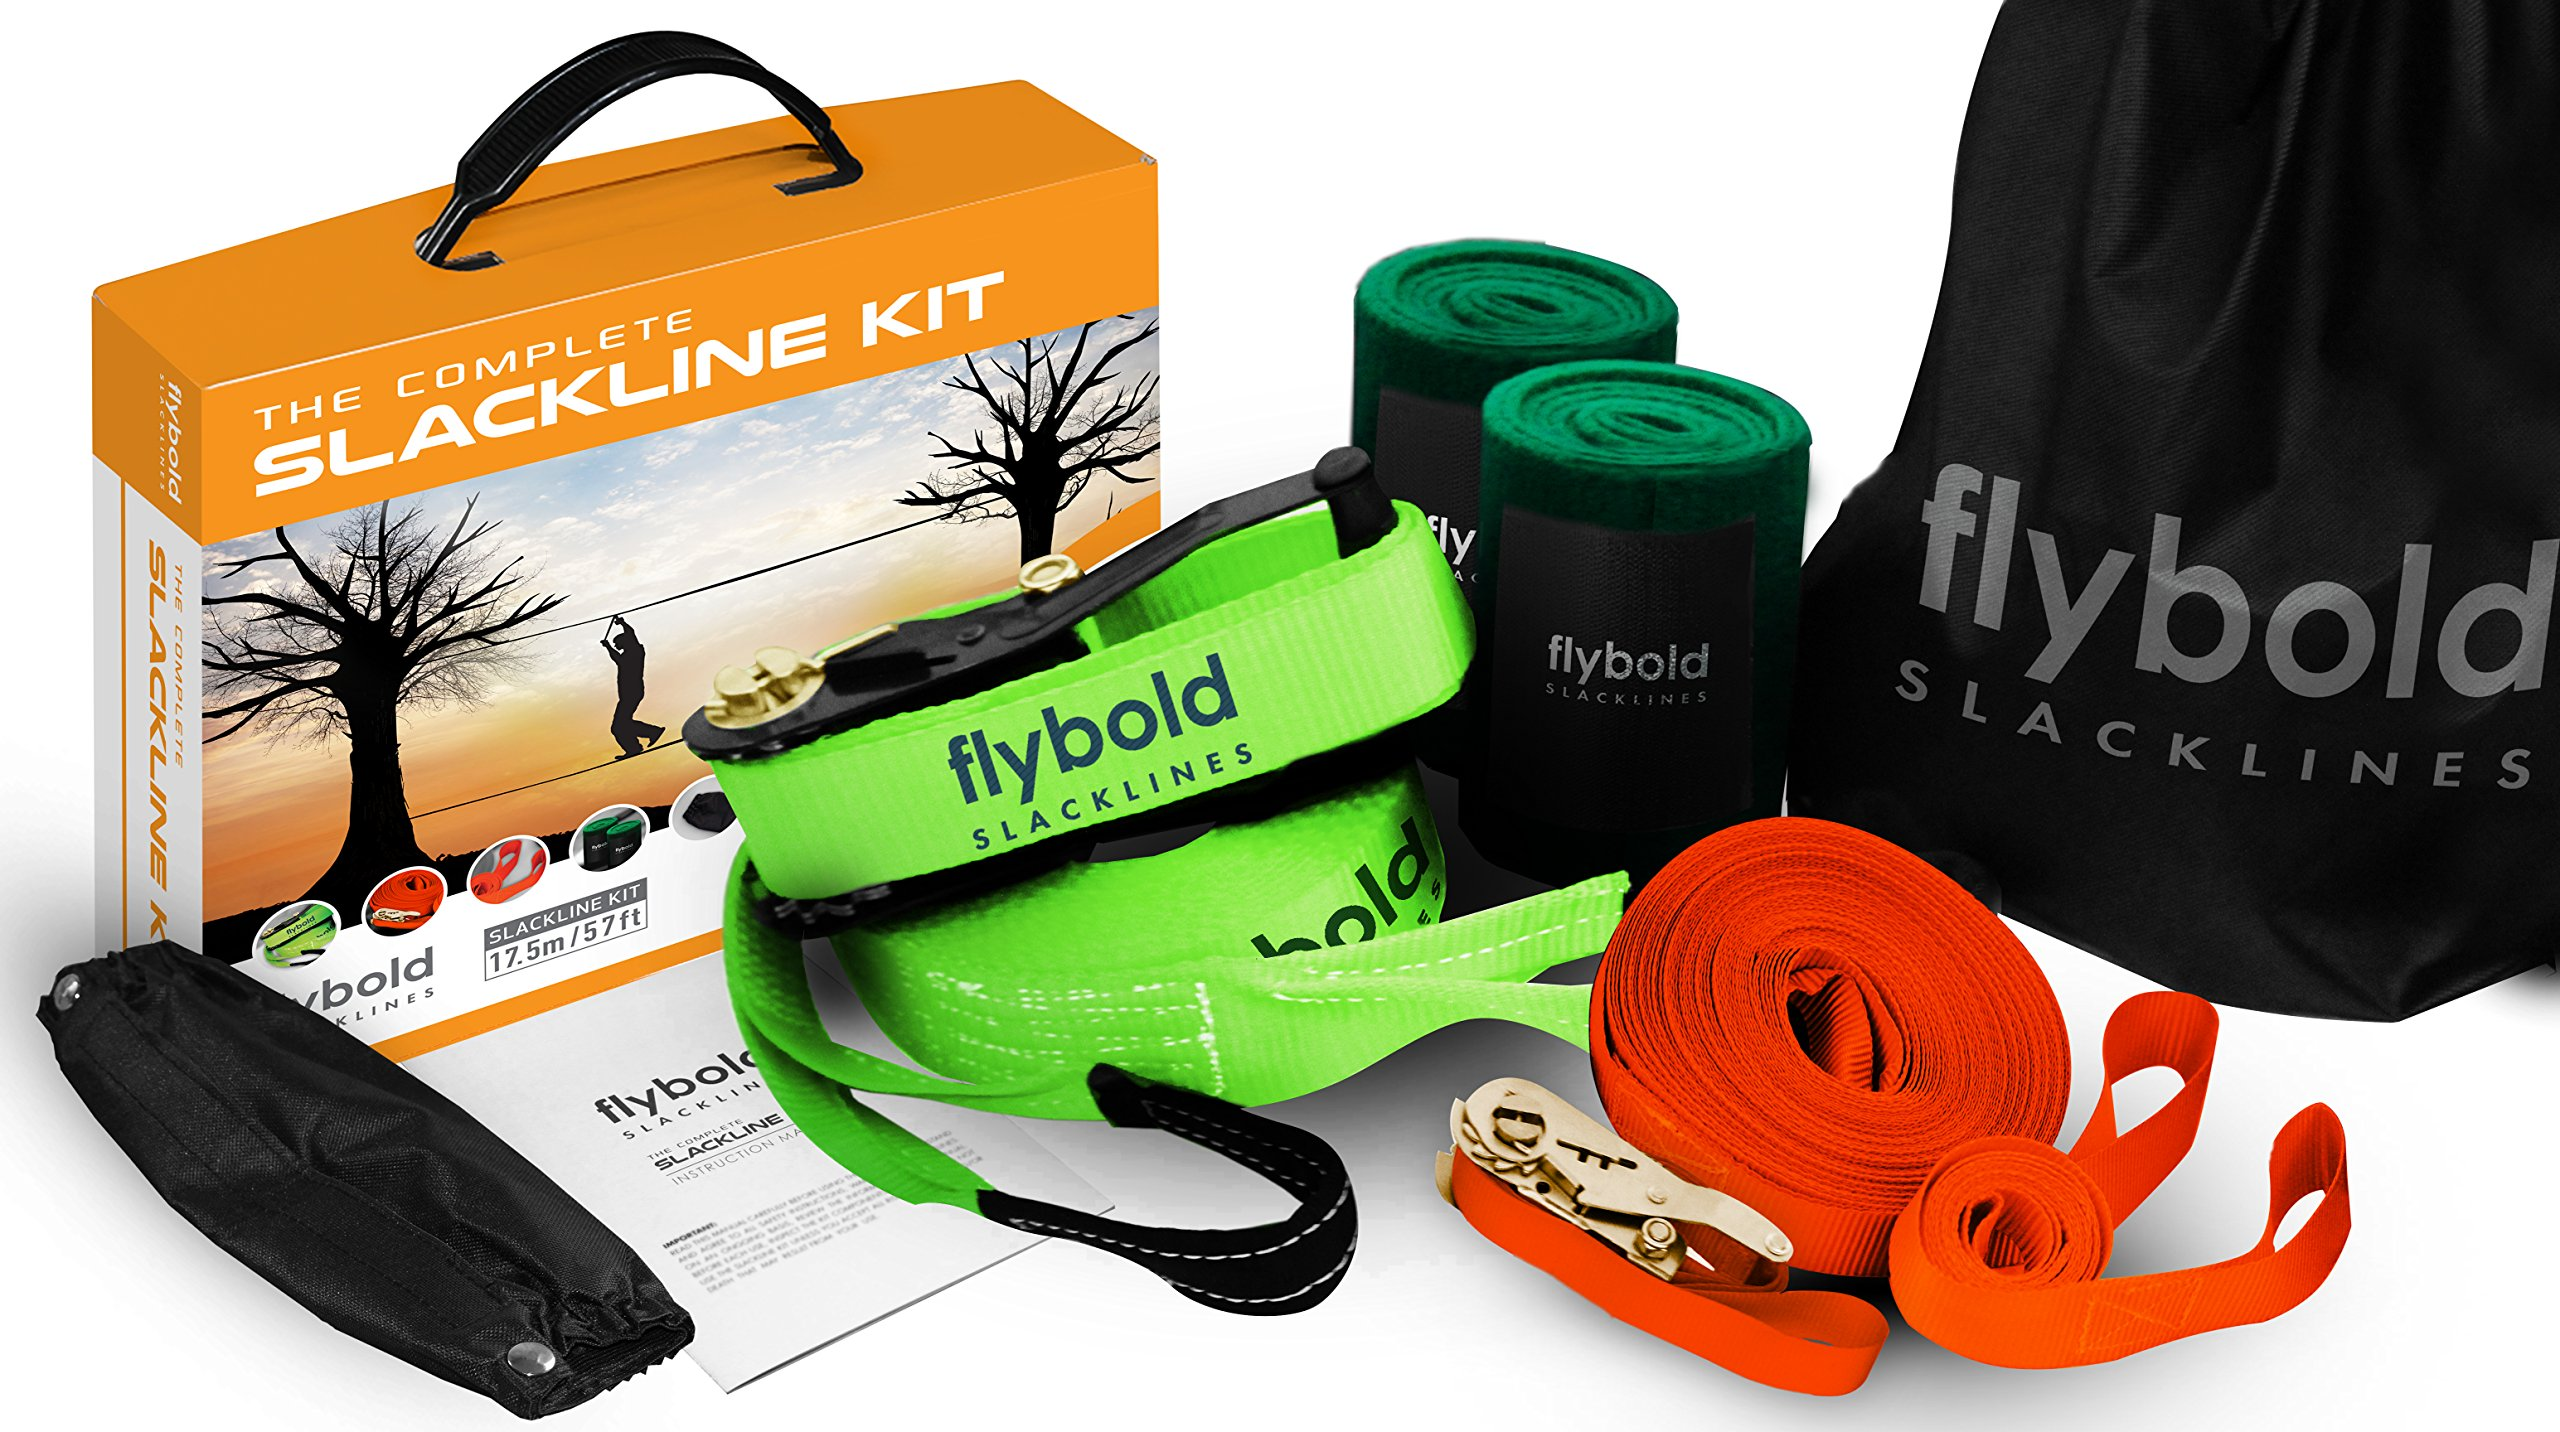 flybold Slackline Kit with Training Line Tree Protectors Ratchet Protectors Arm Trainer 57 feet Easy Set up Instruction Booklet and Carry Bag Complete Set Outdoor Fun for Family Adults Children Kids by flybold